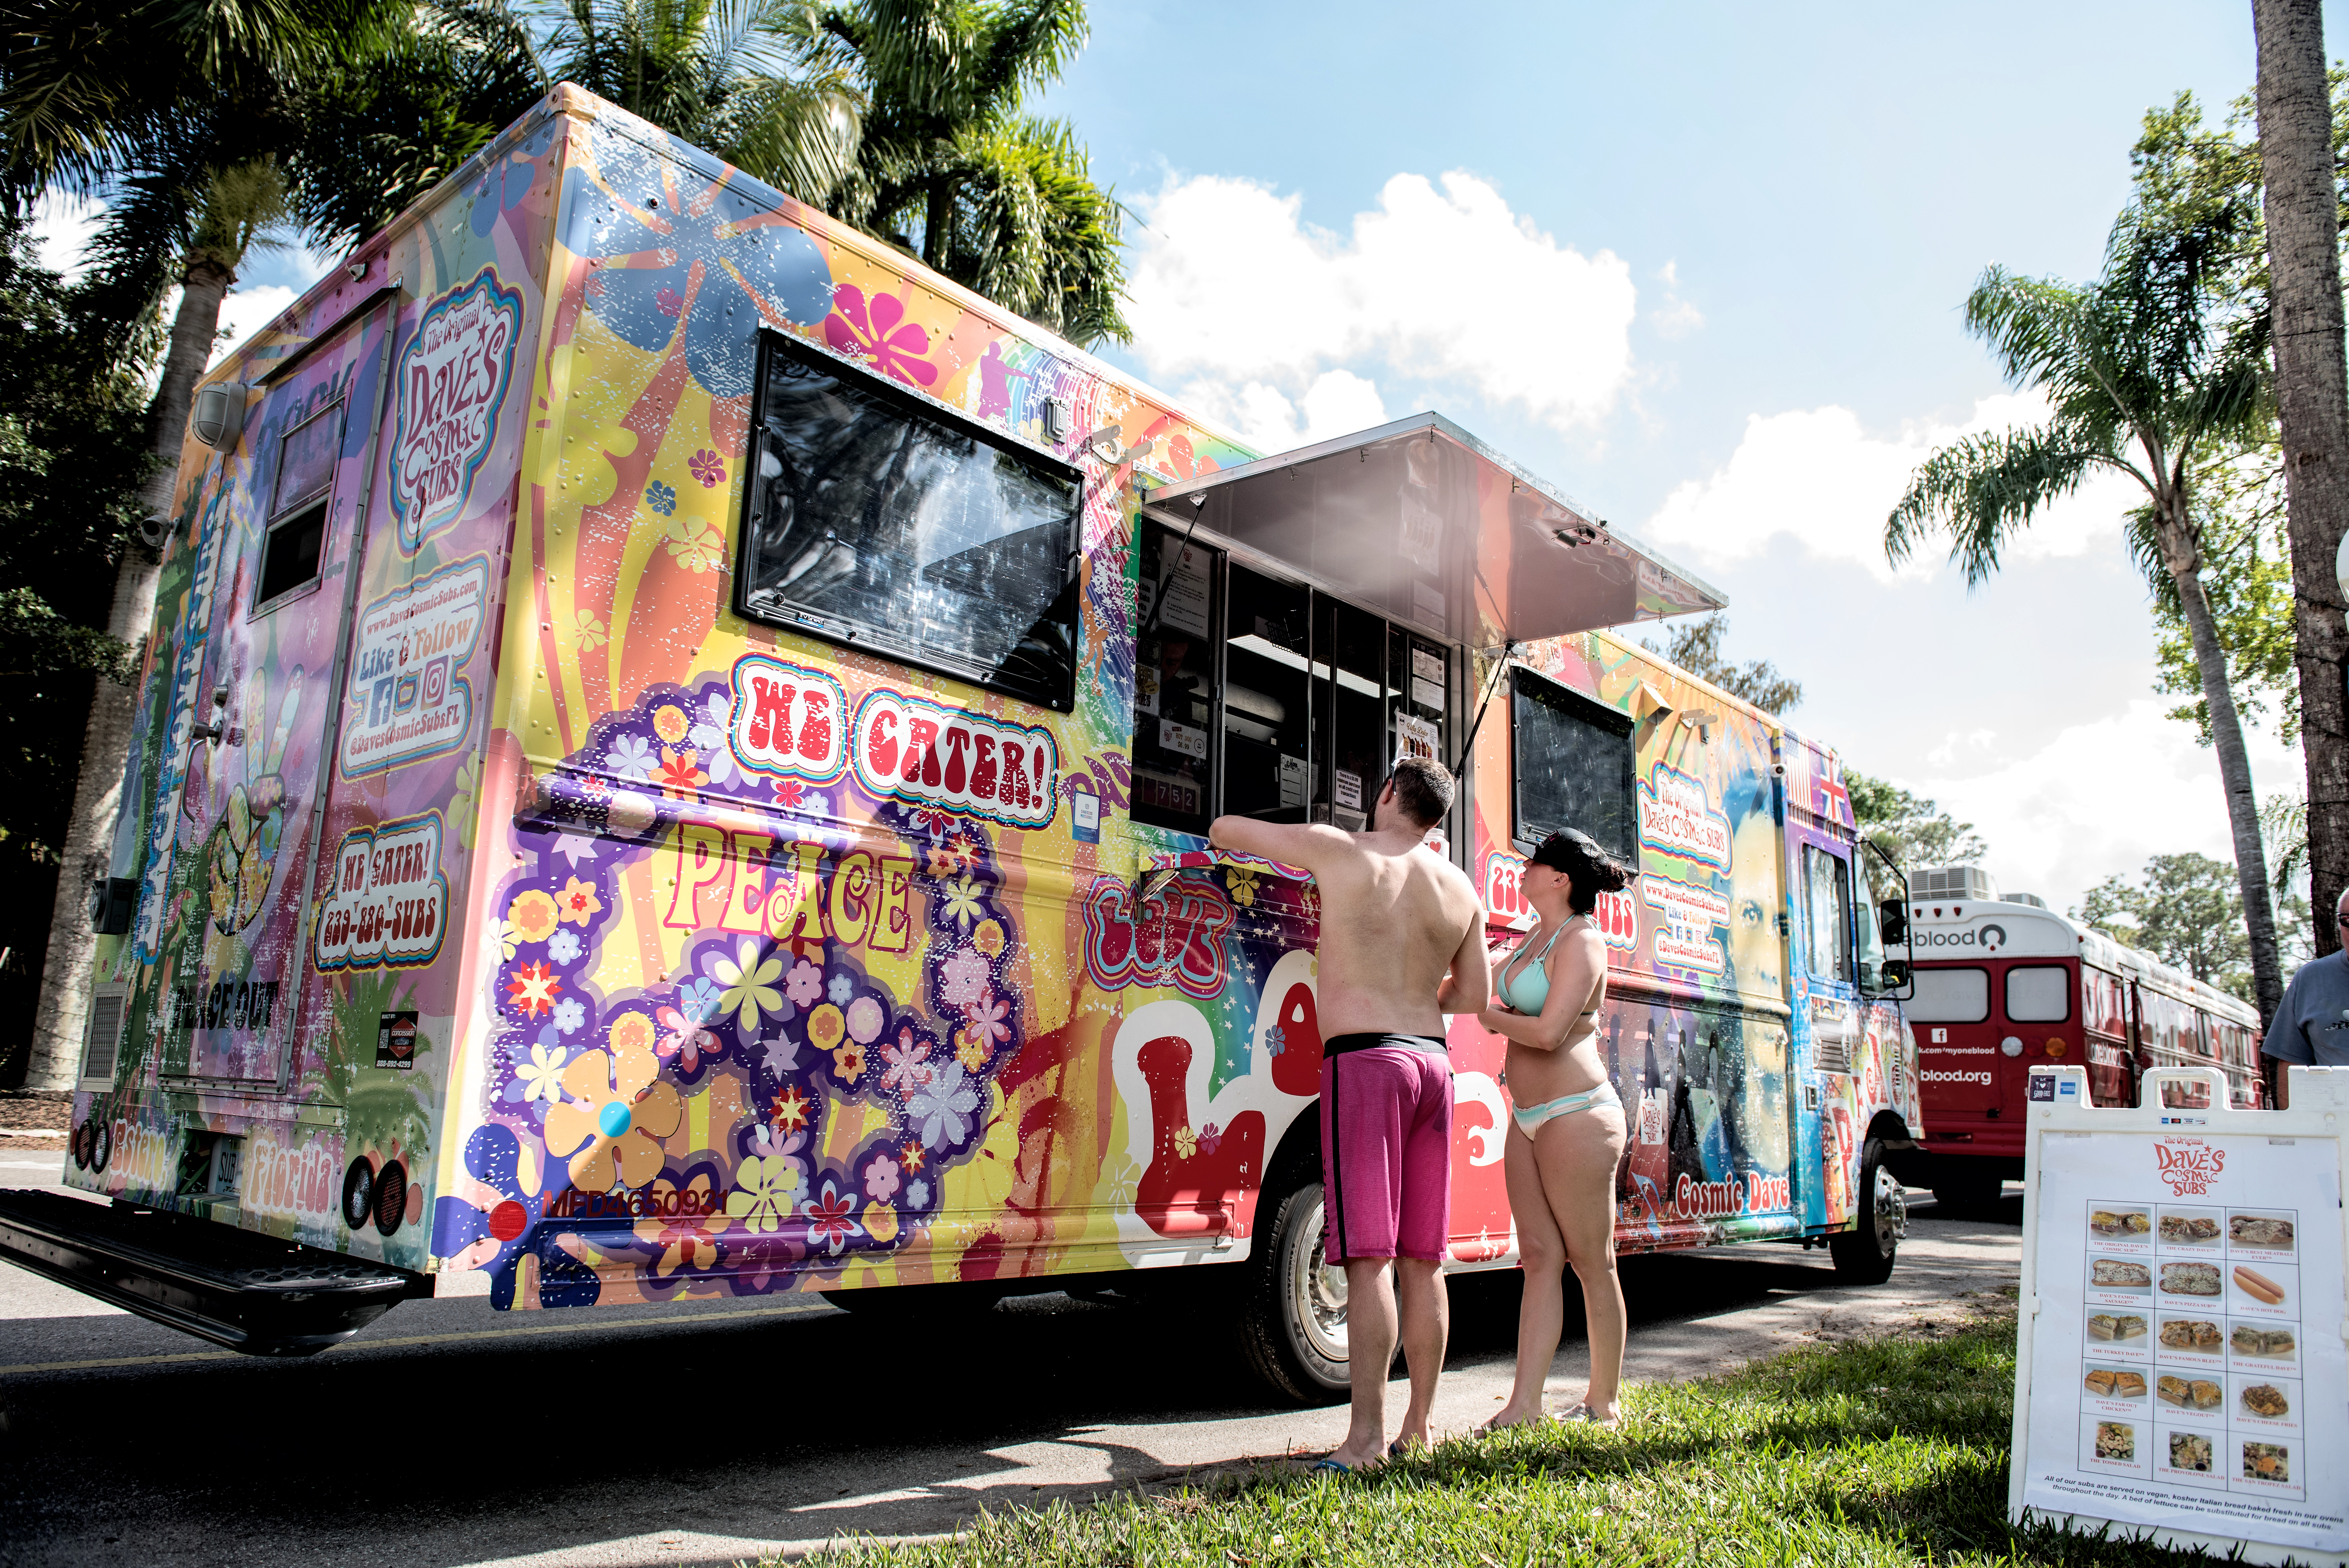 One of the food trucks at our pool party.